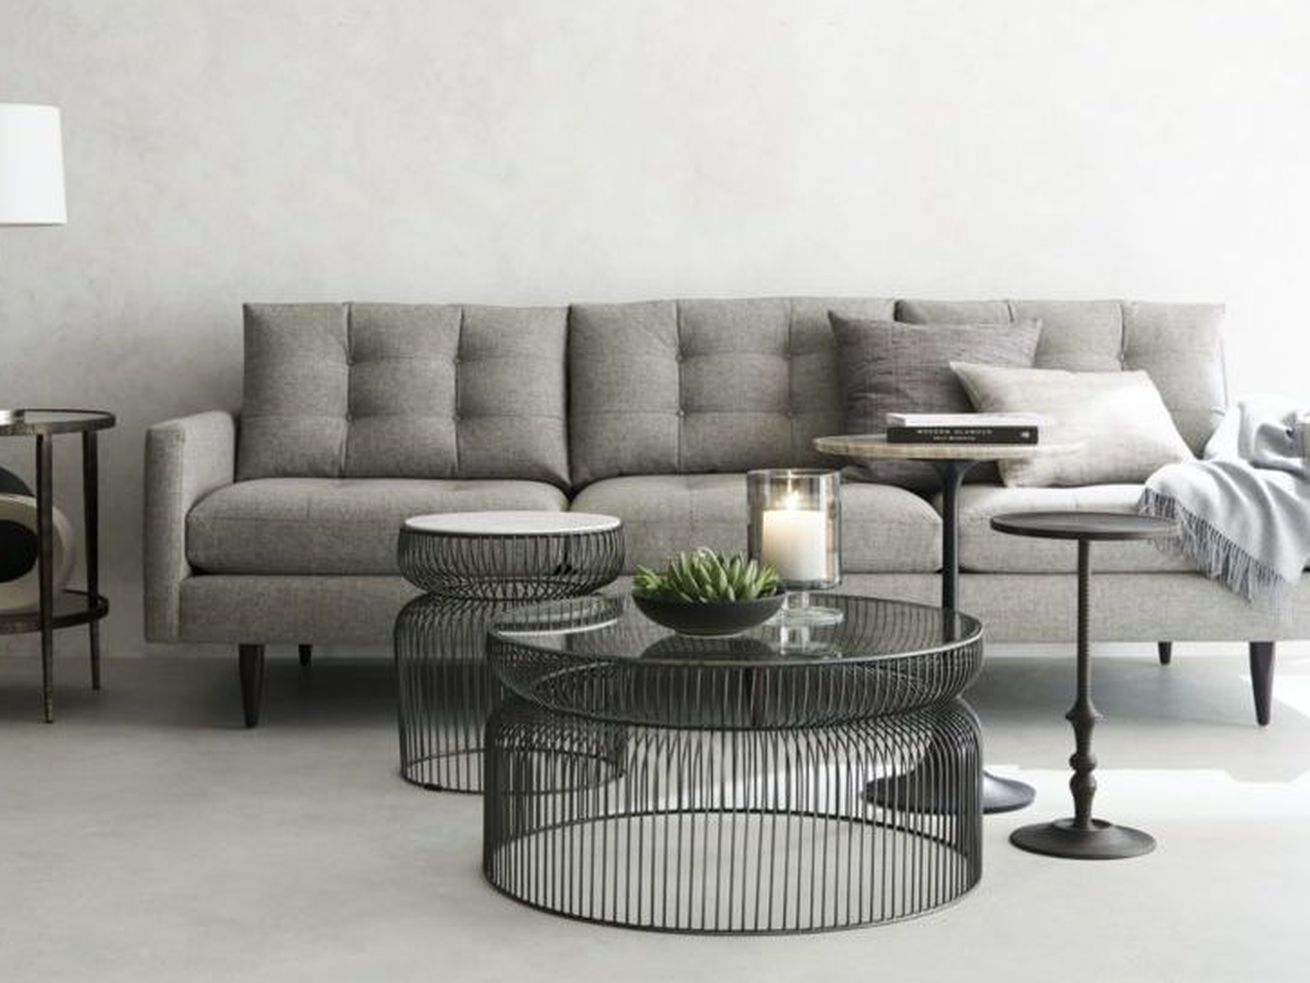 "<a class=""ql-link"" href=""https://www.crateandbarrel.com/spoke-glass-coffee-table/s481272"" target=""_blank"">Spoke Glass Coffee Table</a><strong>,</strong> Crate and Barrel, $299."